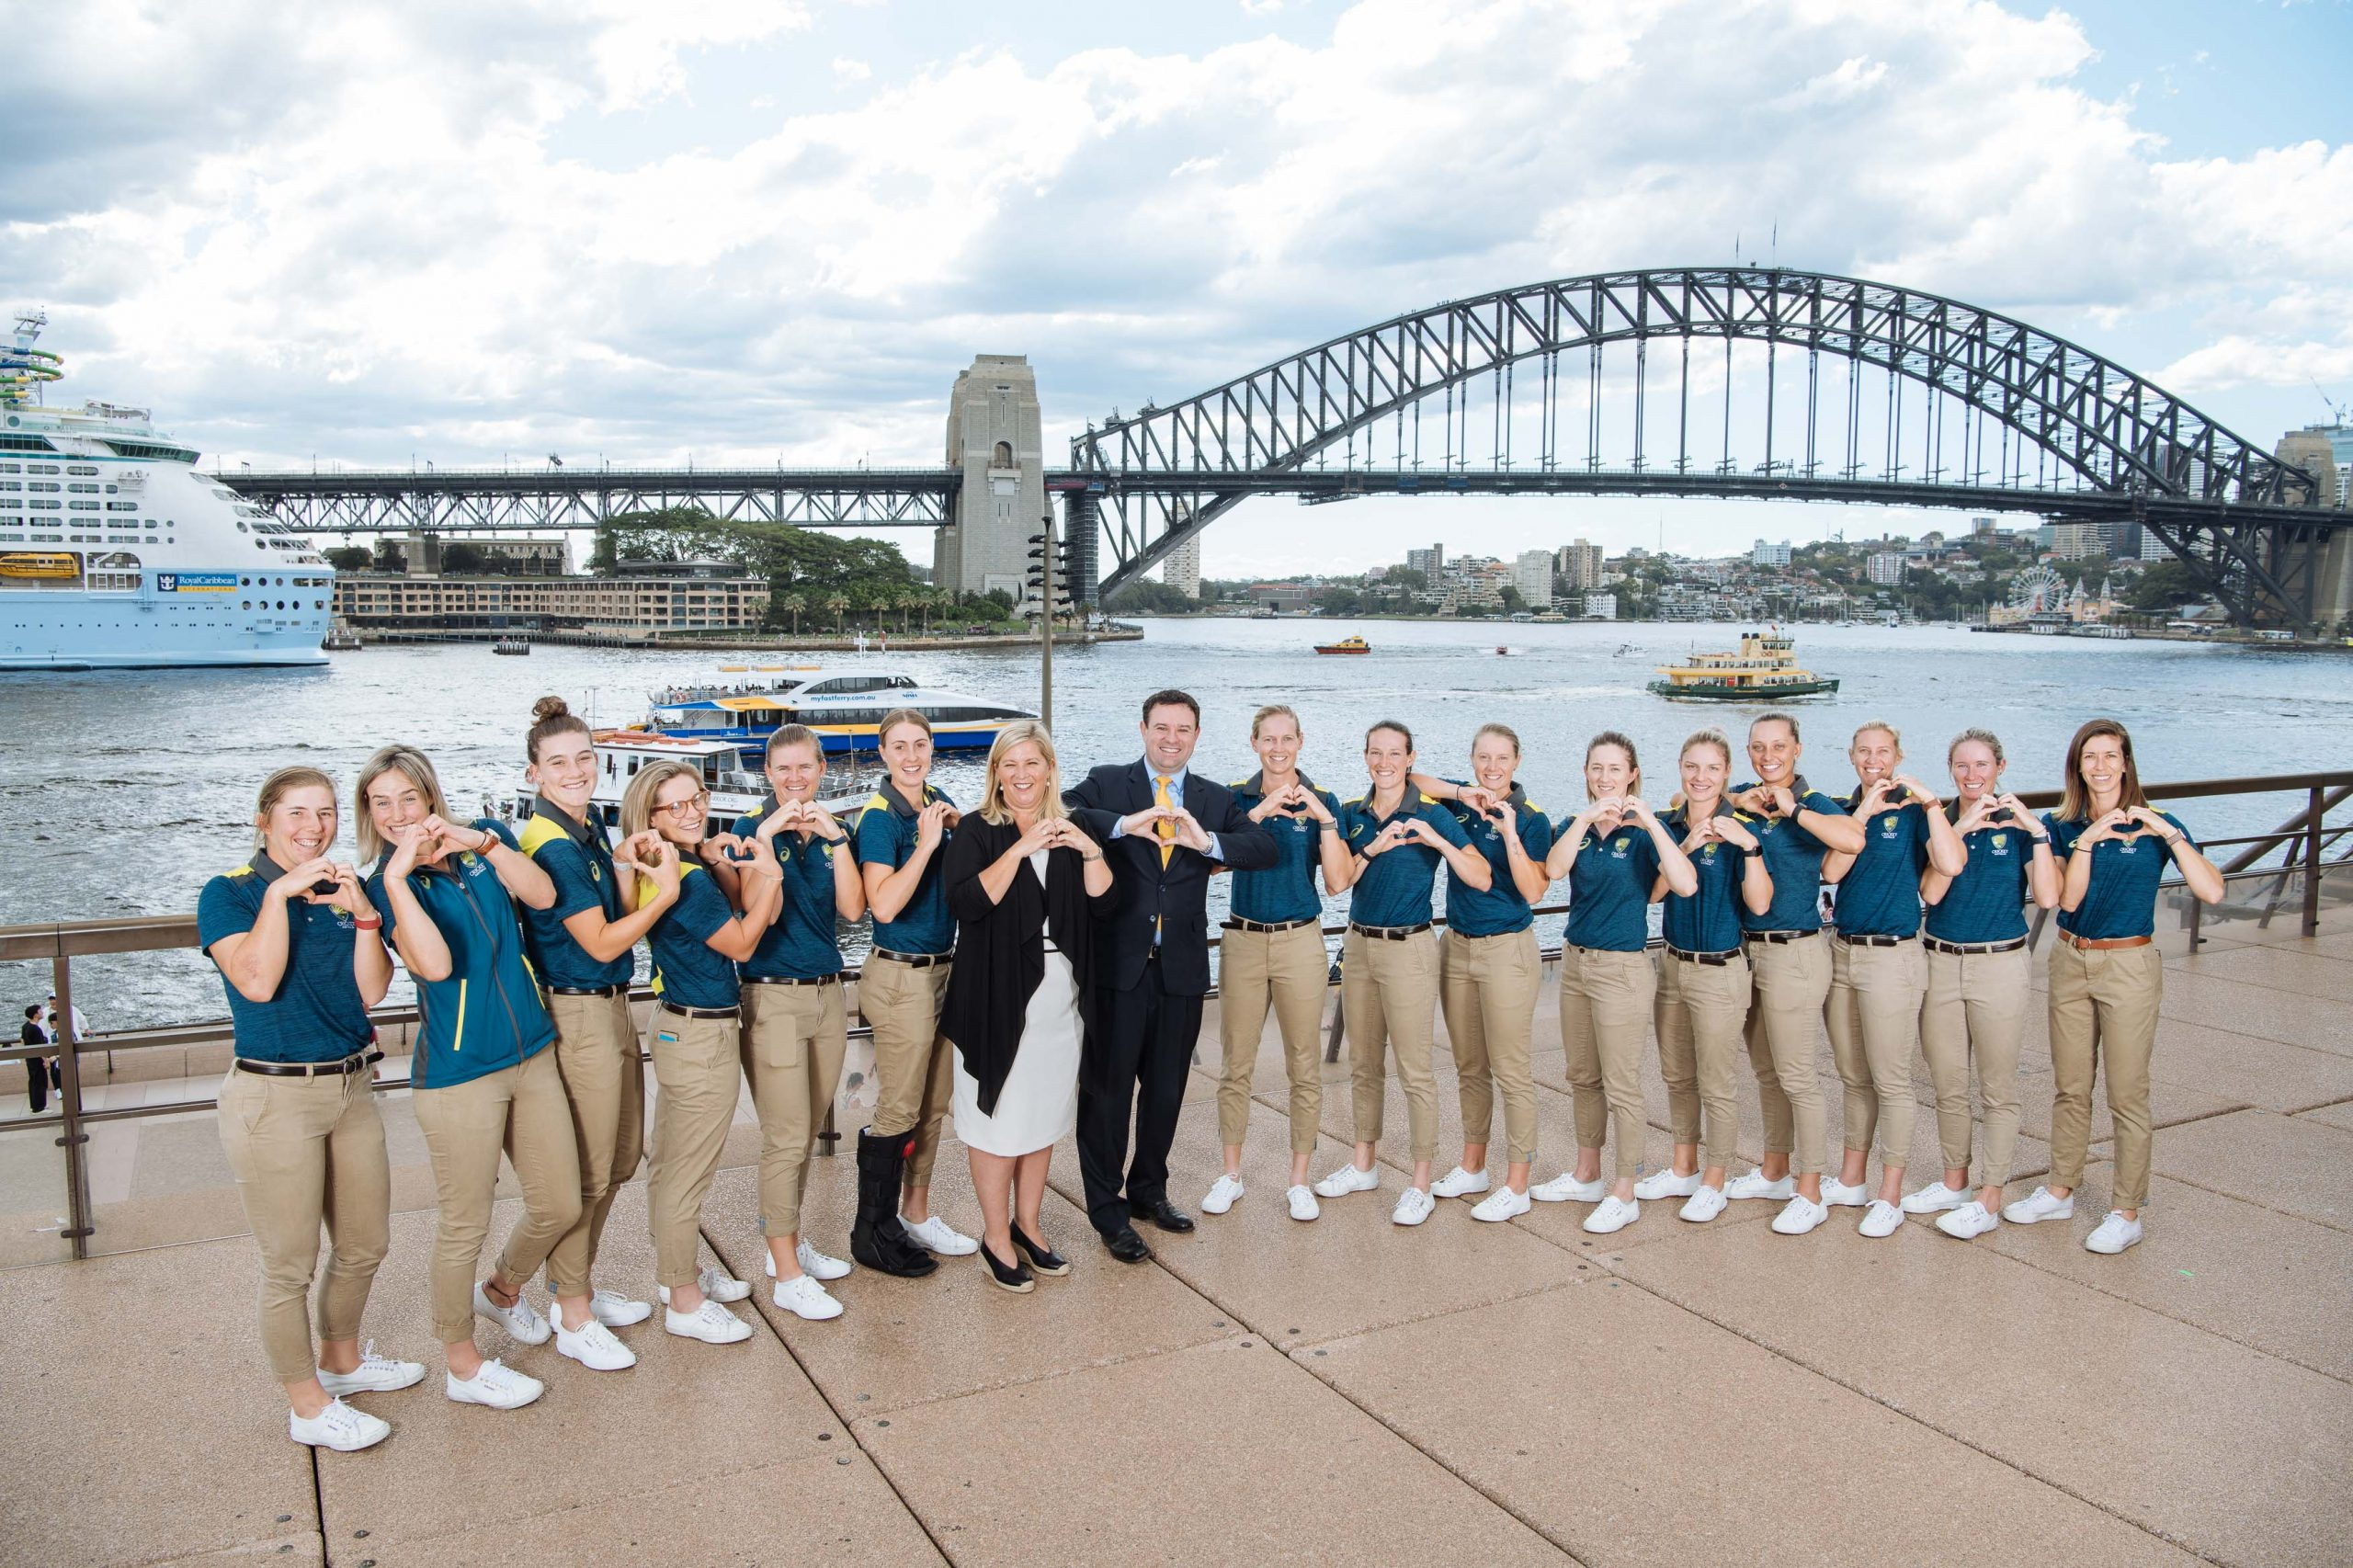 Photo of the Australian Women's Cricket Team and Ministers Taylor and Ayres in the Opera House forecourt, with the Harbour Bridge in the background. They are doing the Love NSW hand shape